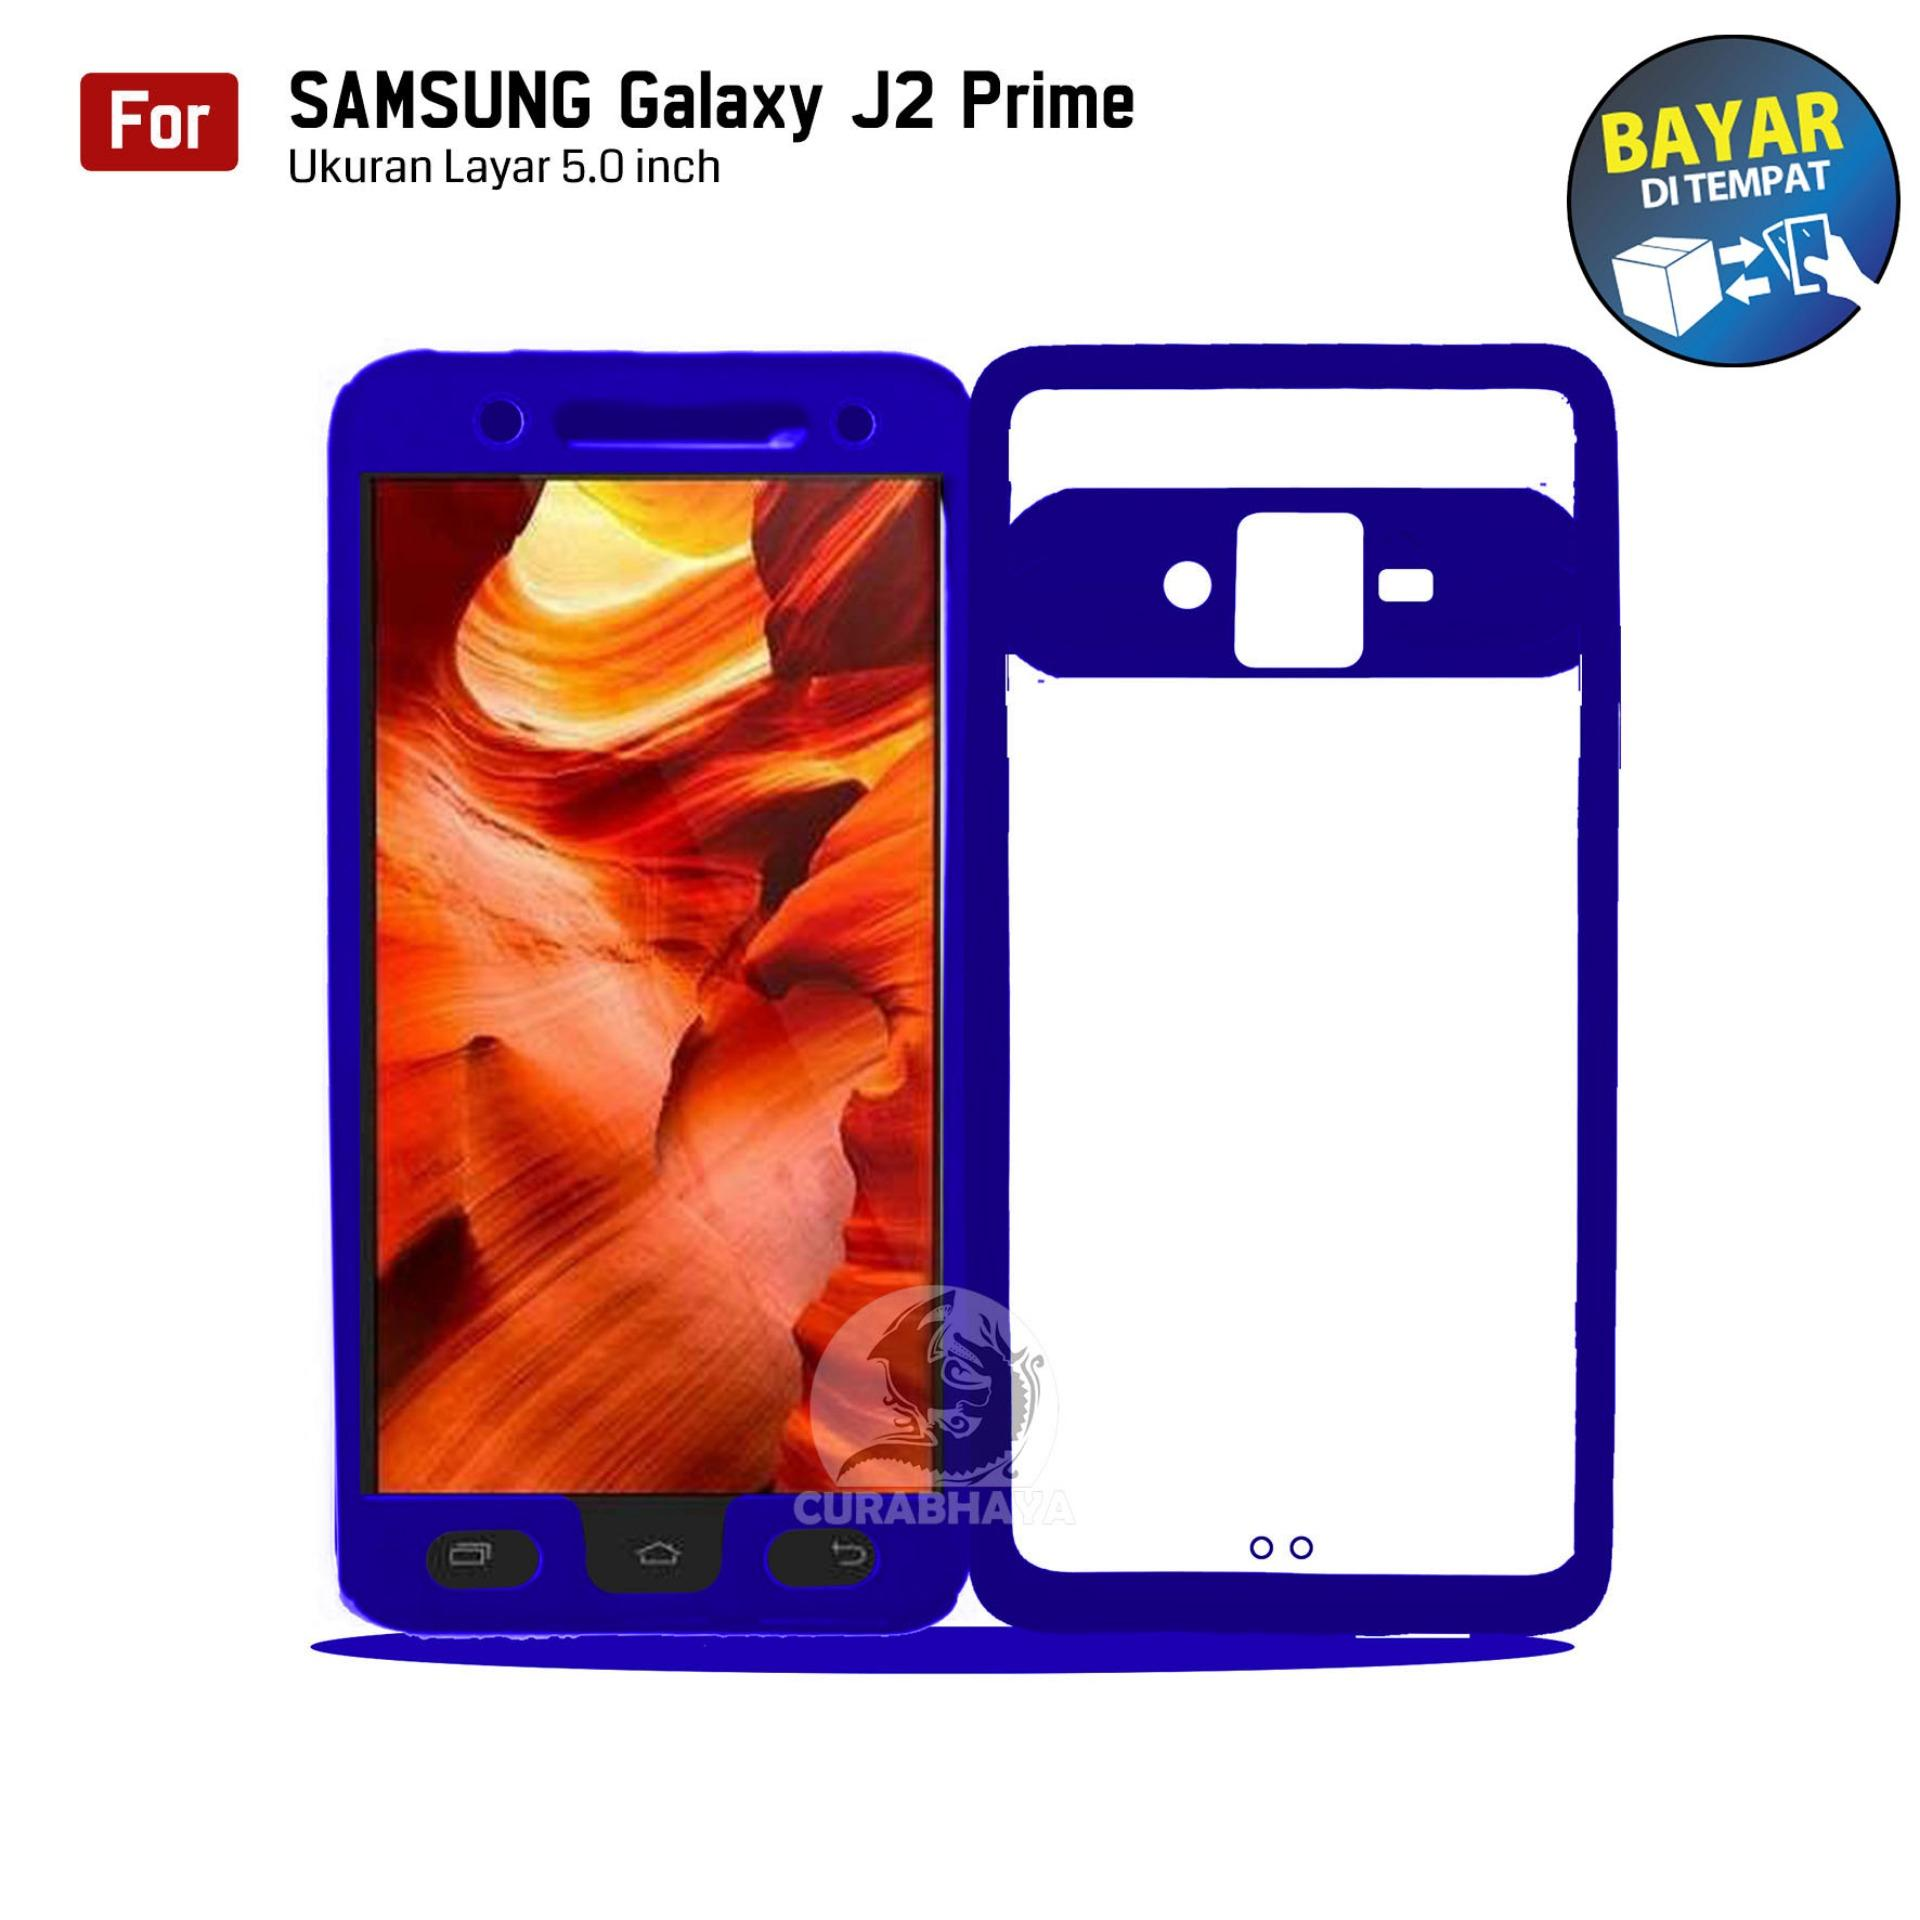 AutoFocus 360° for Samsung Galaxy J2 Prime / G532 / Duos | Premium Fuze Hybrid Case Protect Full Body